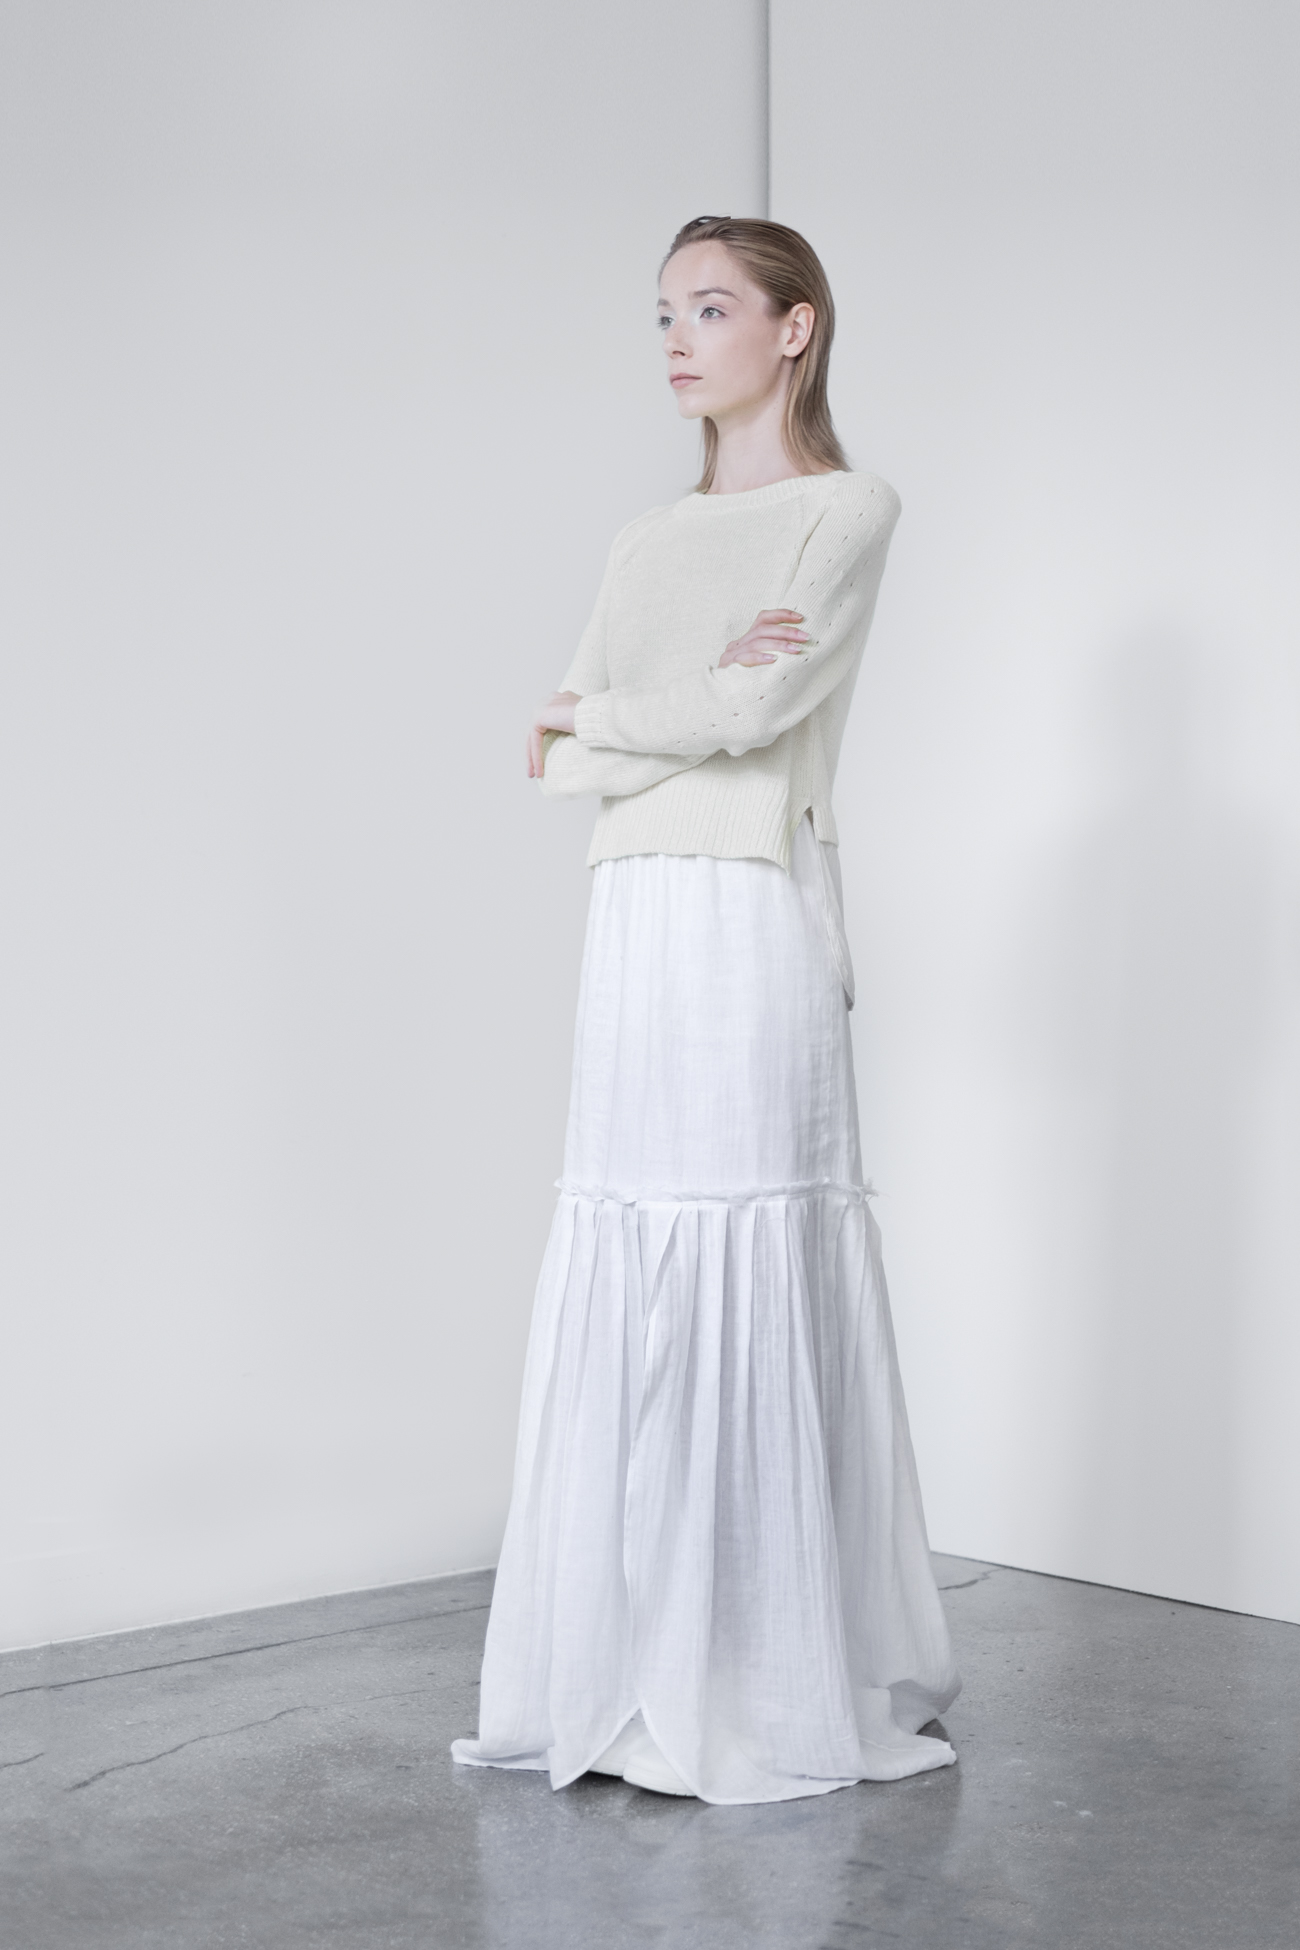 LOOK 9   TOP:  2260  / Bone   -     Crew neck pullover with Silk crepe de chine shirt tail.  WS: 129   BOTTOM:  2291  / Blanc -   Long maxi skirt also can be worn as strapless dress, in crinkle woven 2-layer cotton gauze.